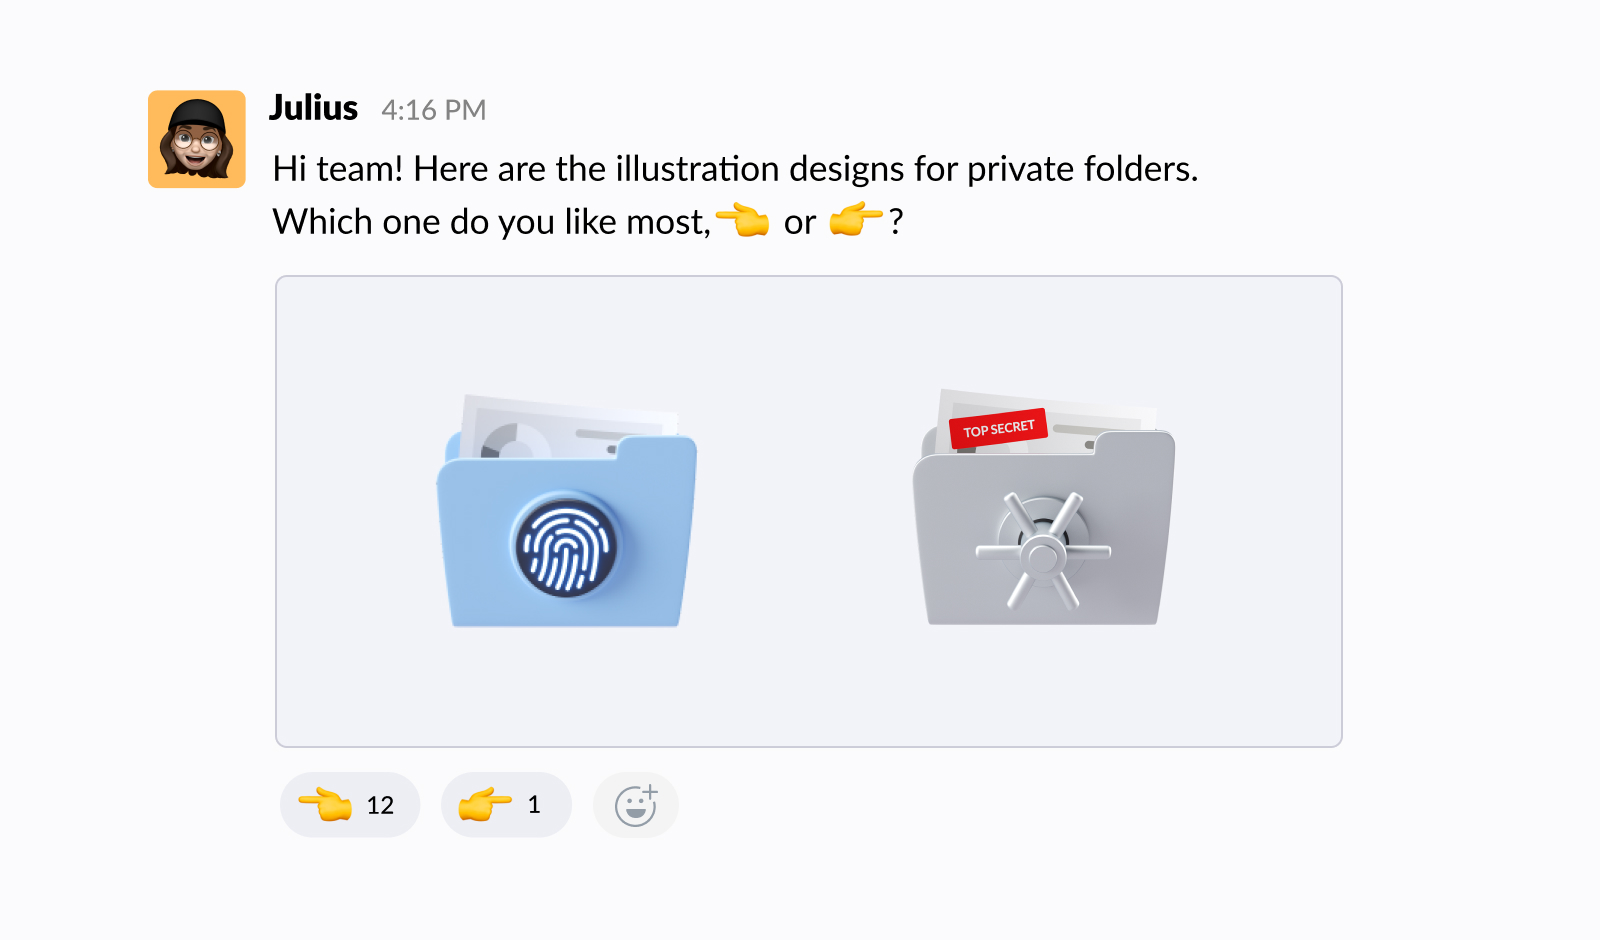 How Pitch uses Slack to get design feedback